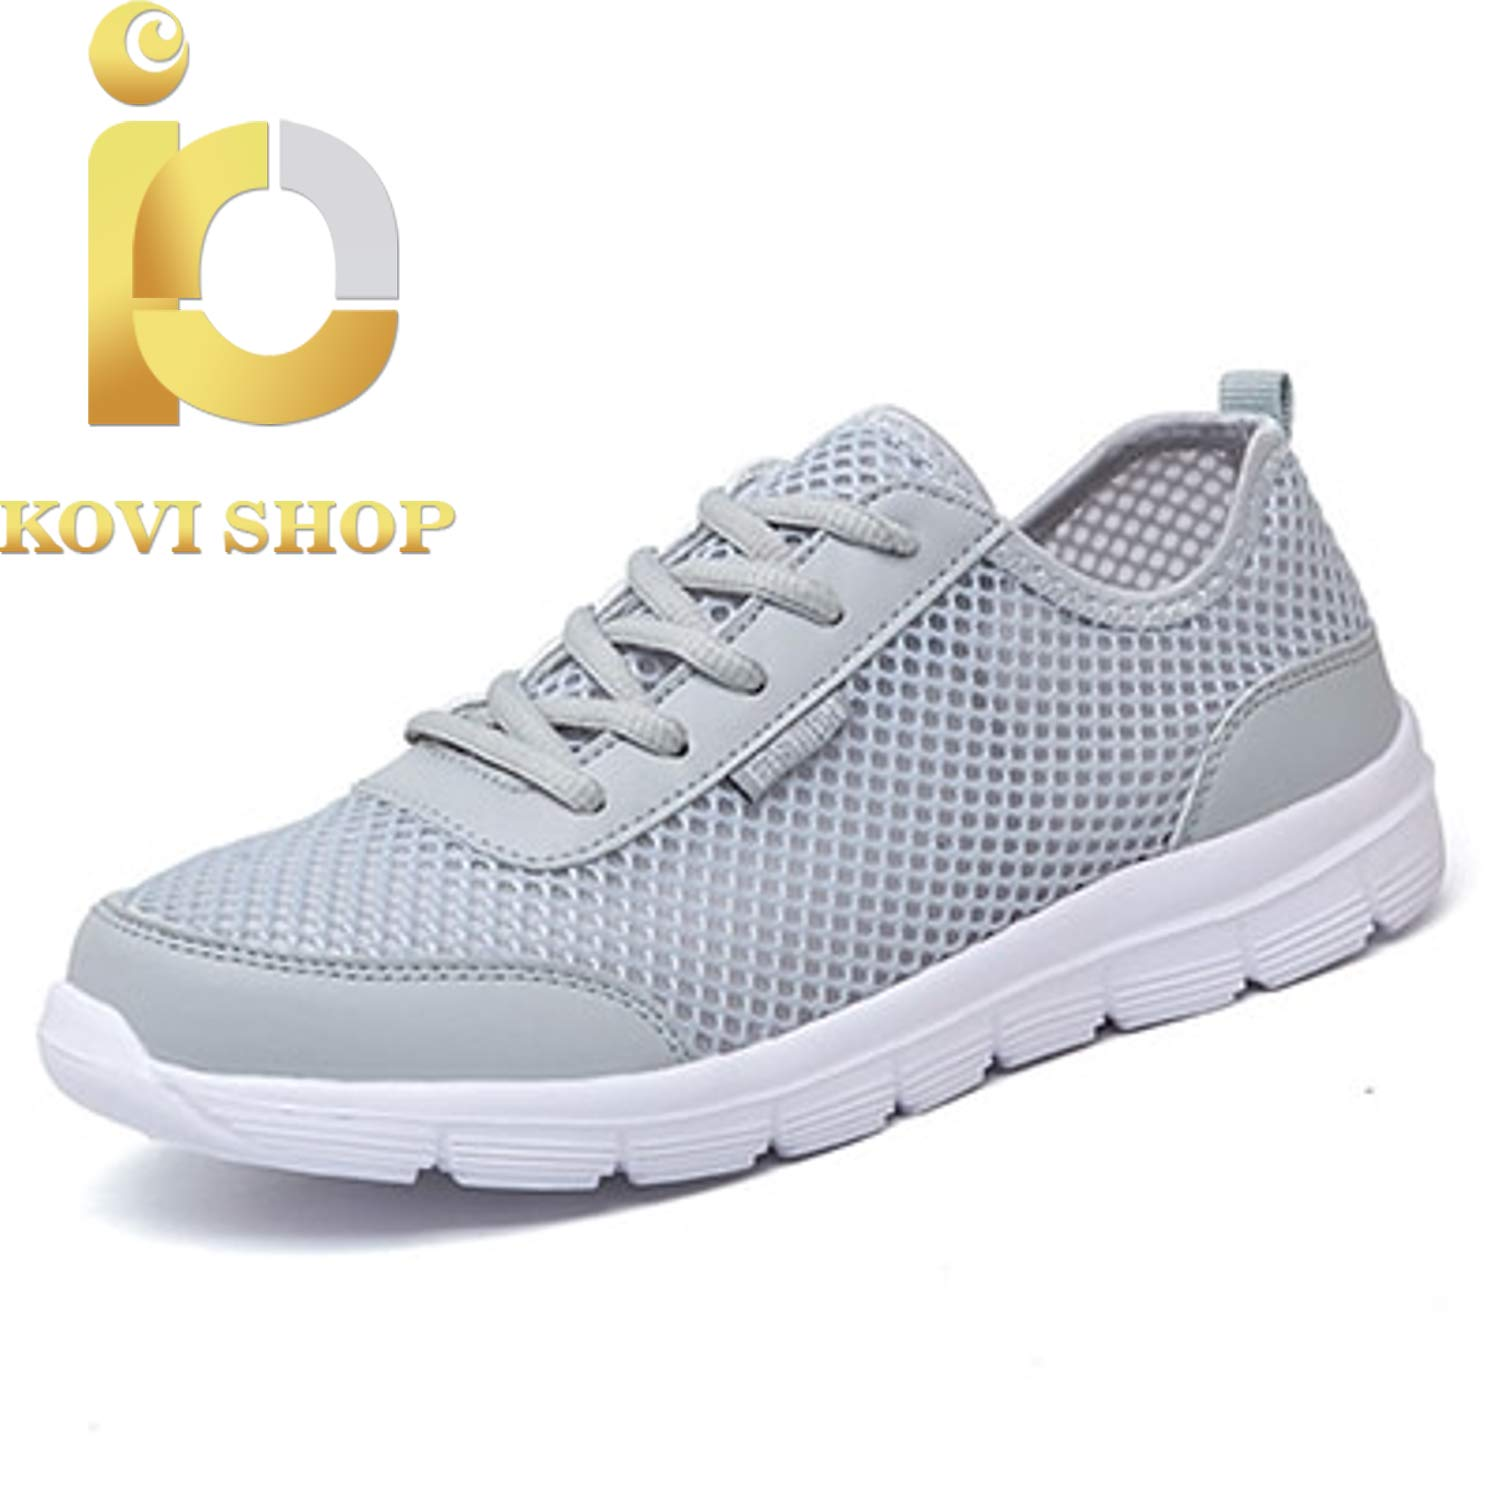 KoviShop Sneakers Breathable Fashion Mesh Casual Shoes Couple Lover